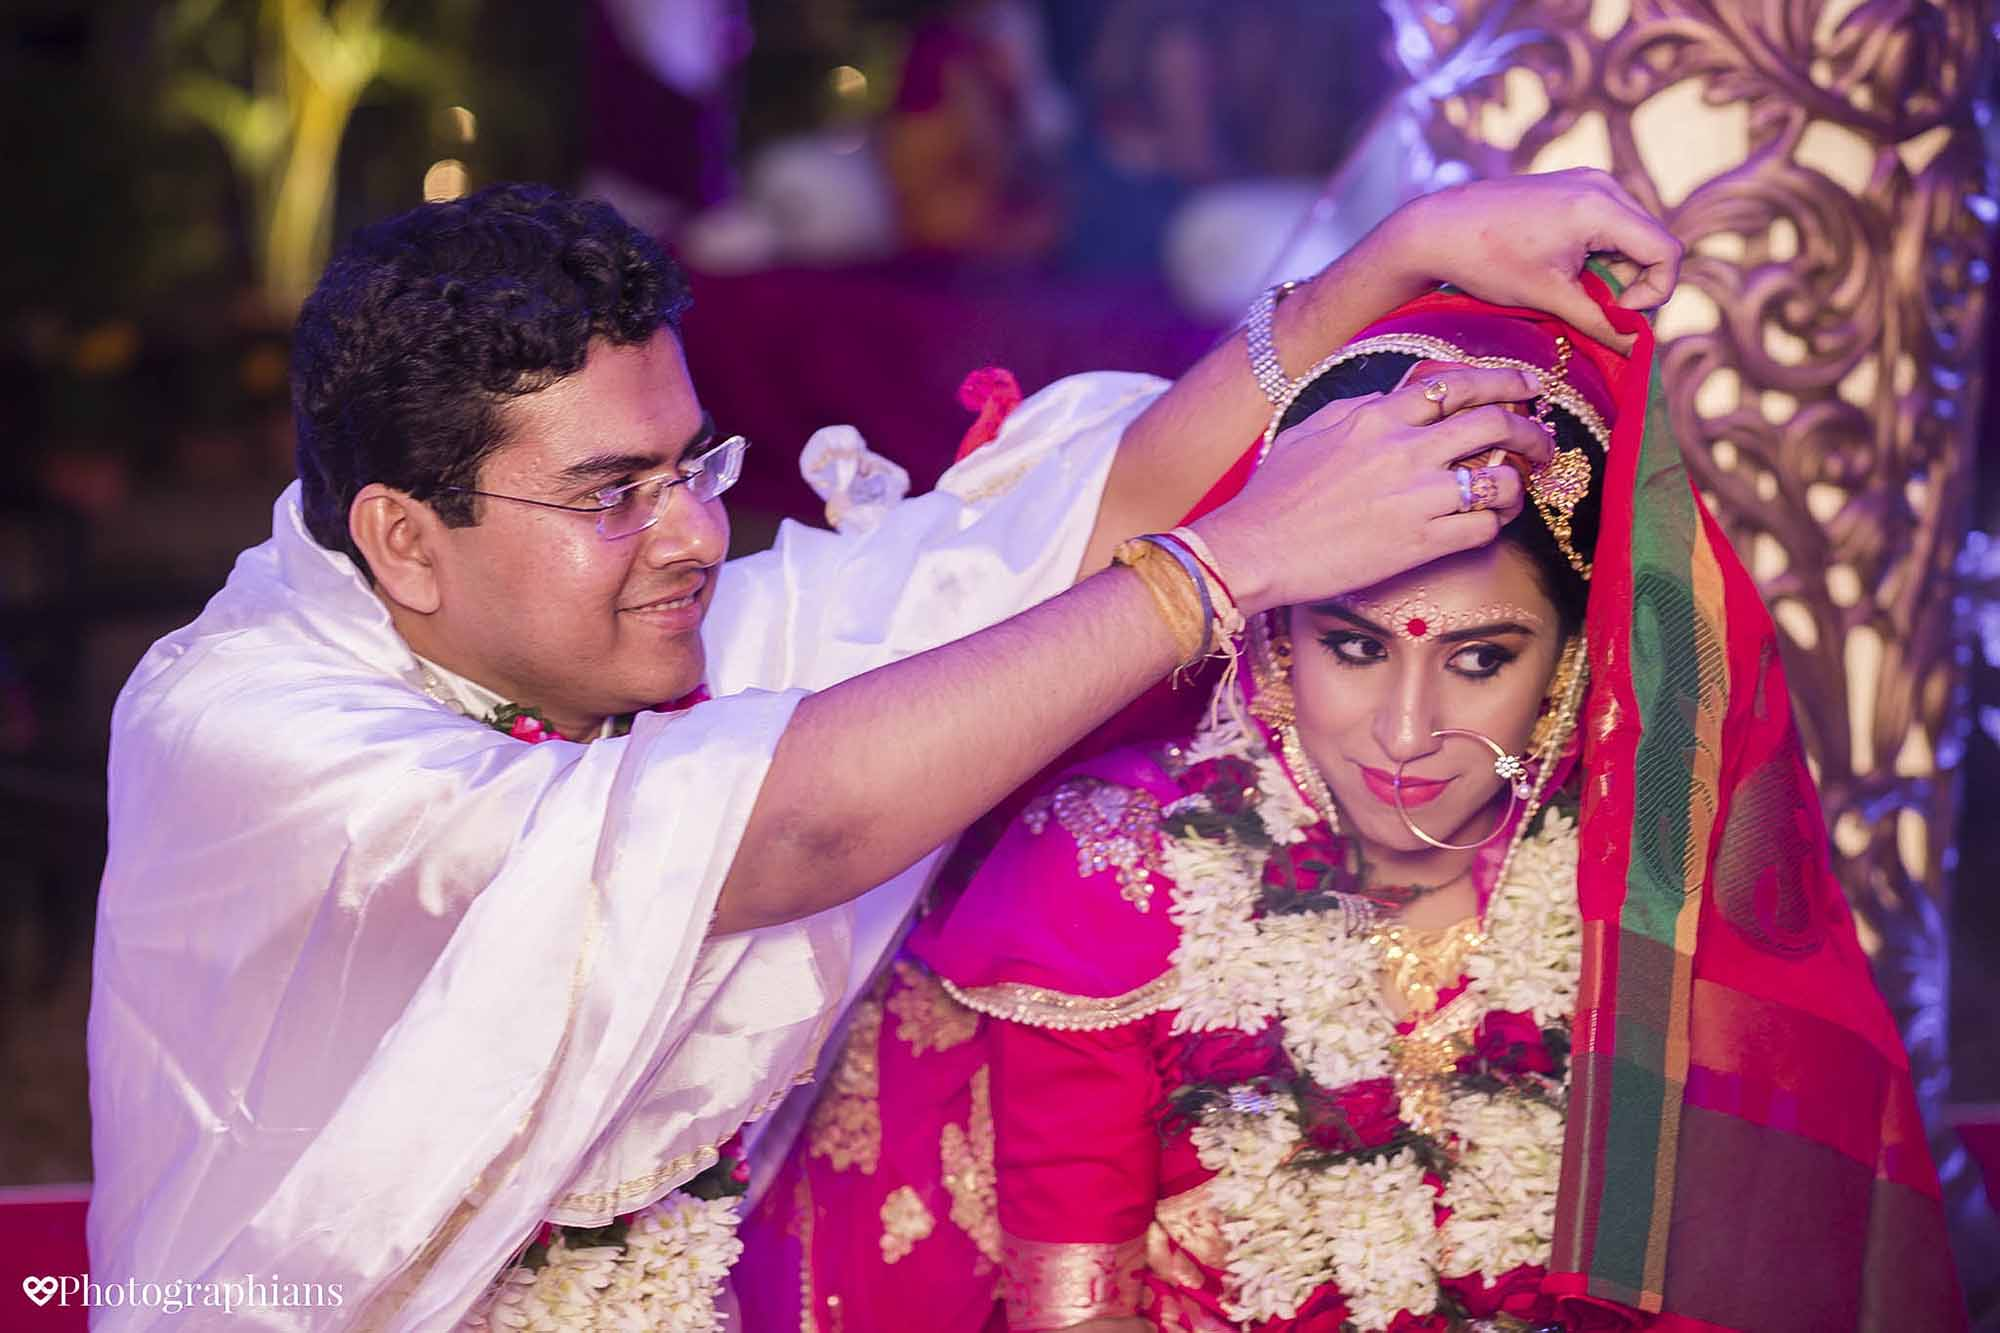 Bengali_Wedding_Photography_Kolkata_Photographians_147